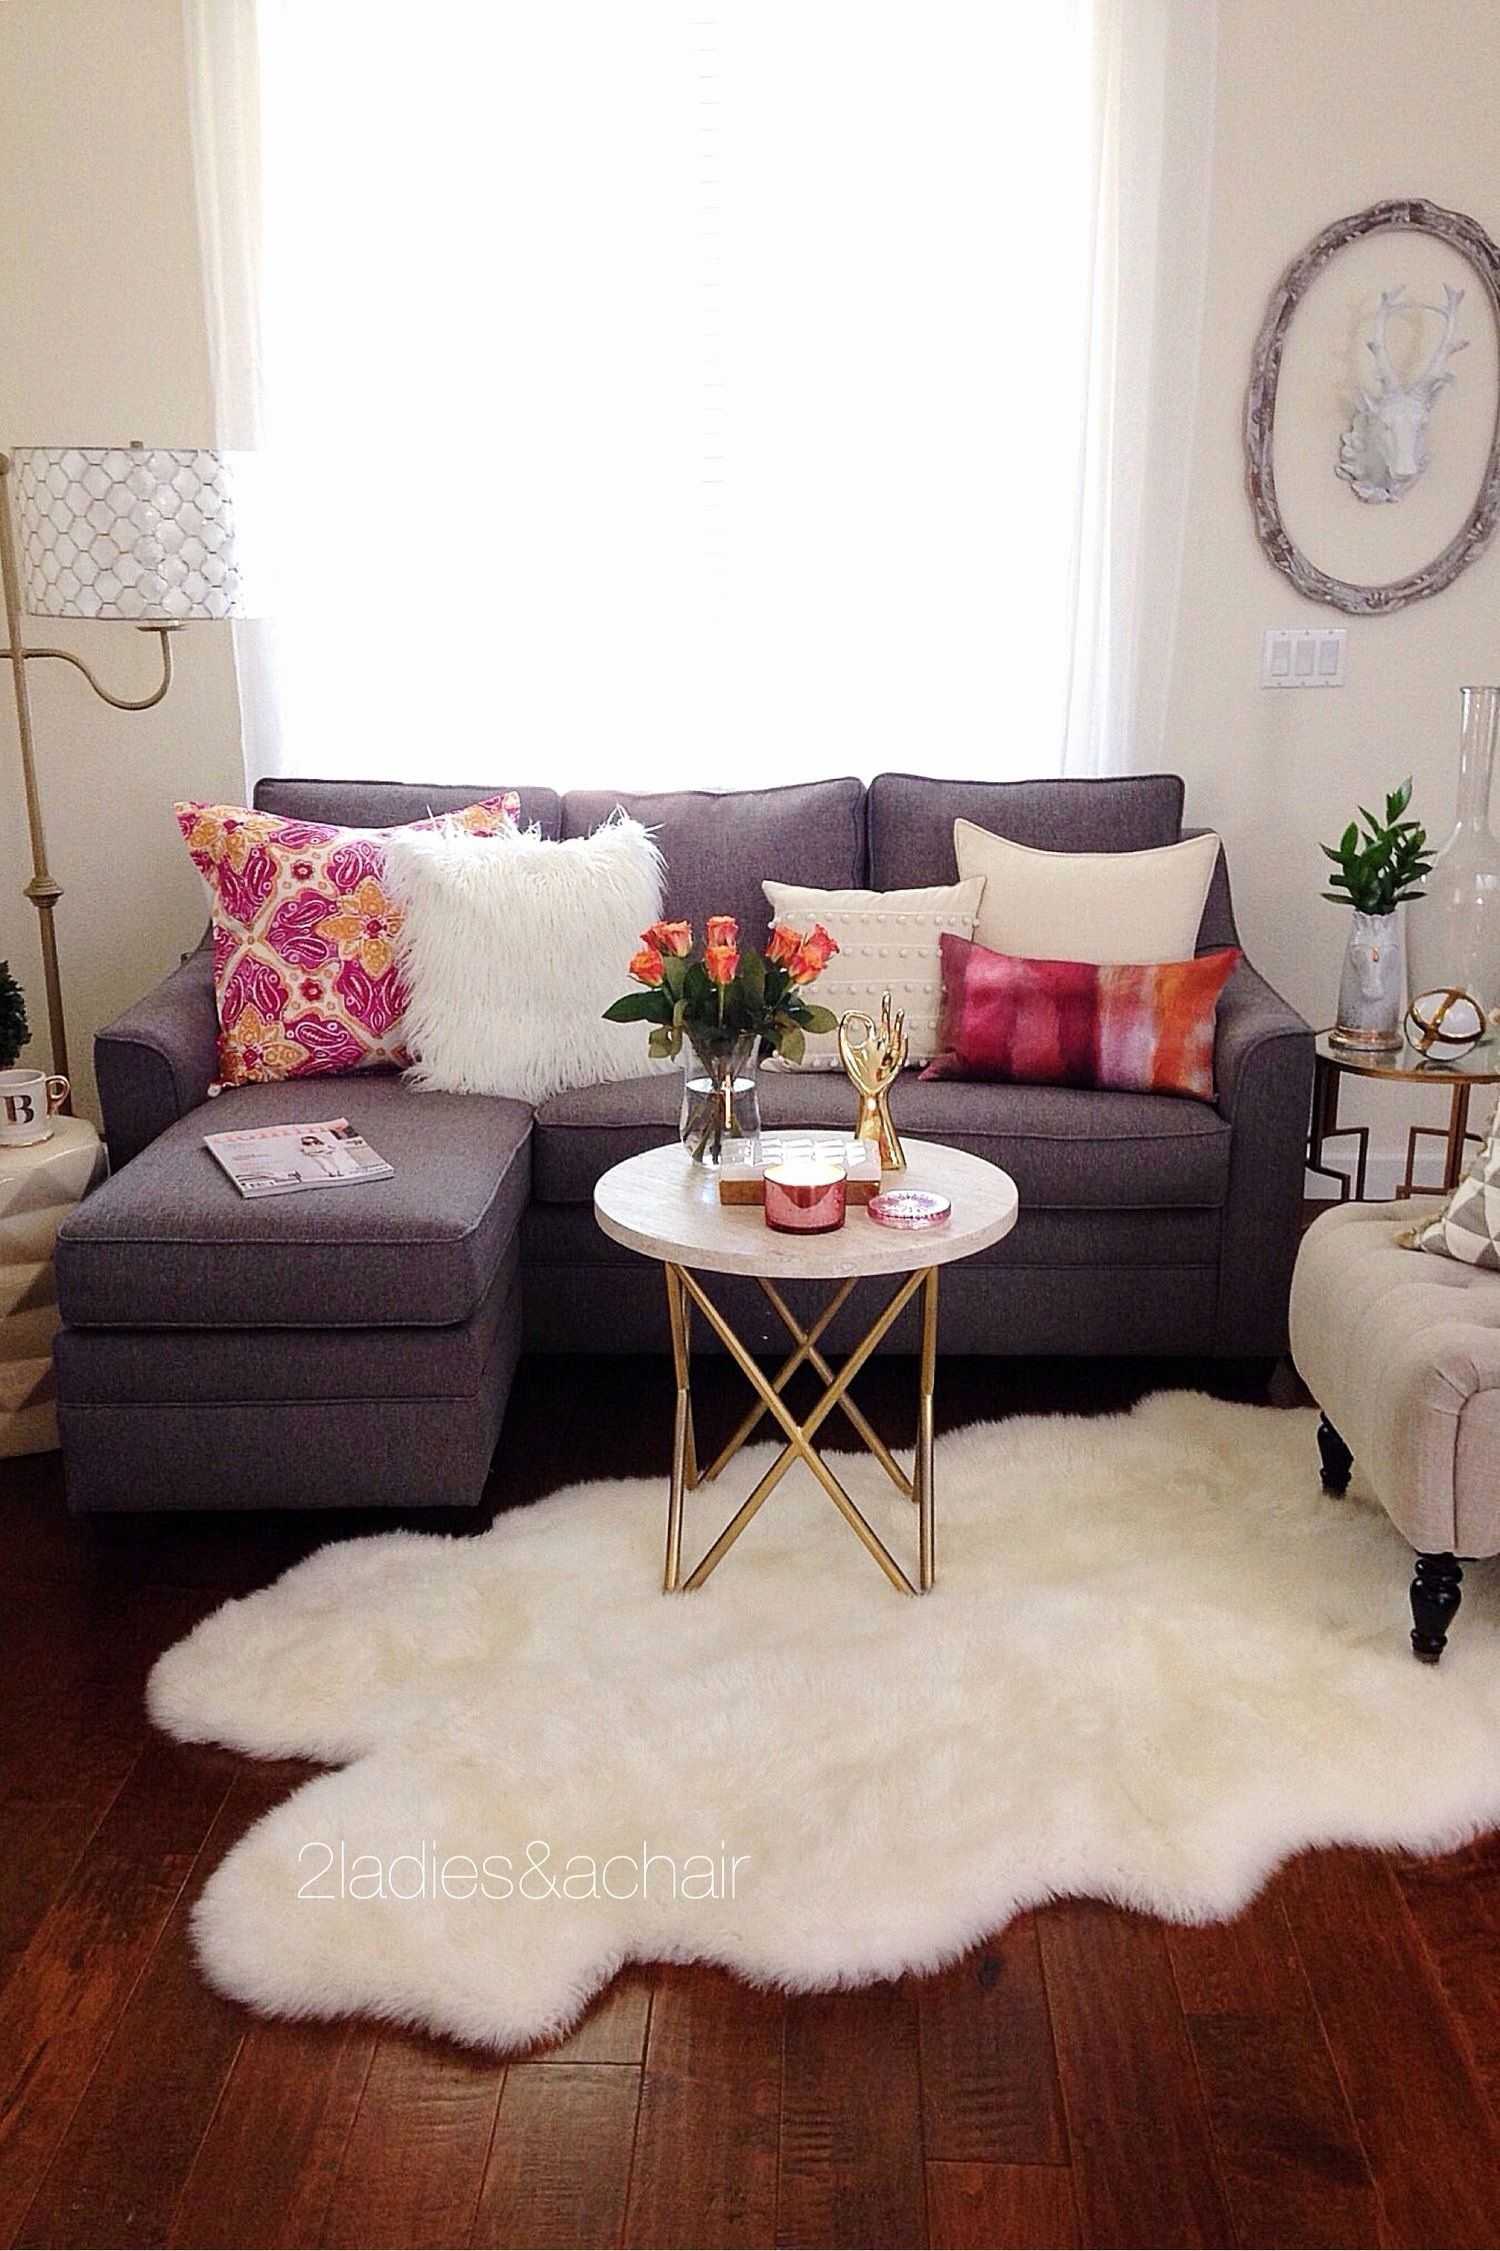 2 Couches In Small Living Room Elegant Decorating With Br